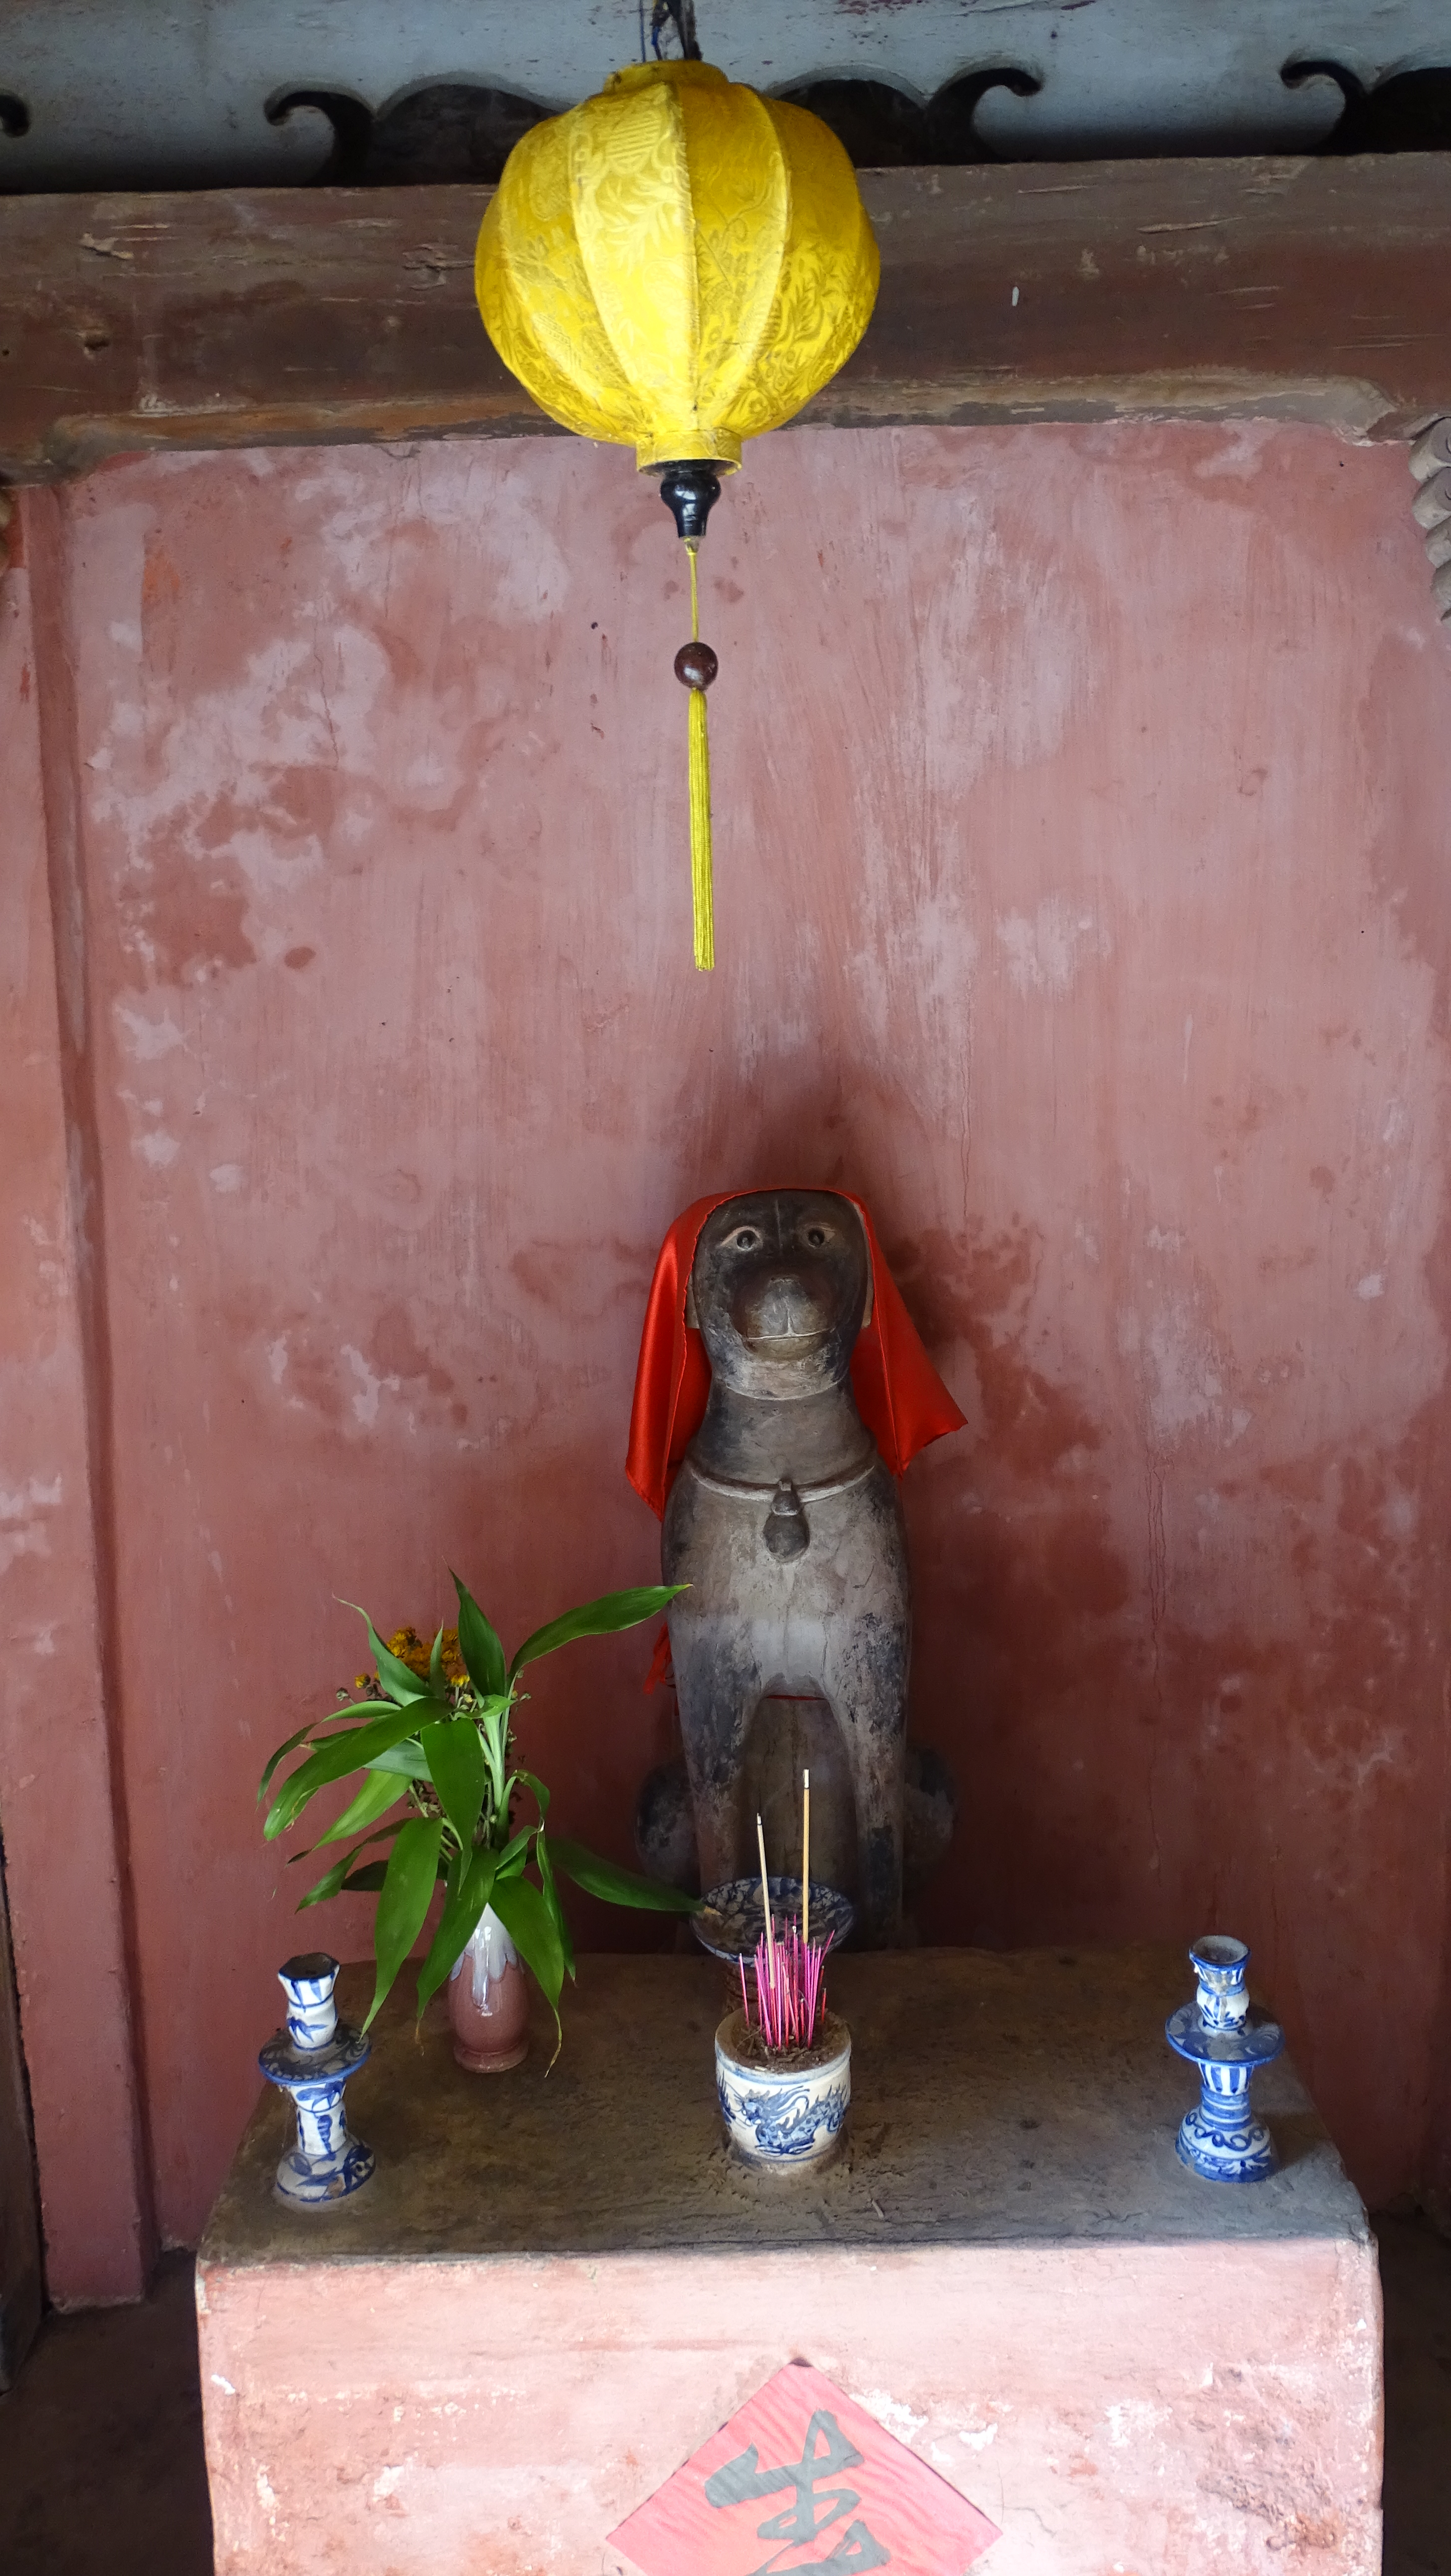 An altar with a statue of a dog draped in a red cloth with a yellow paper lantern hanging above it